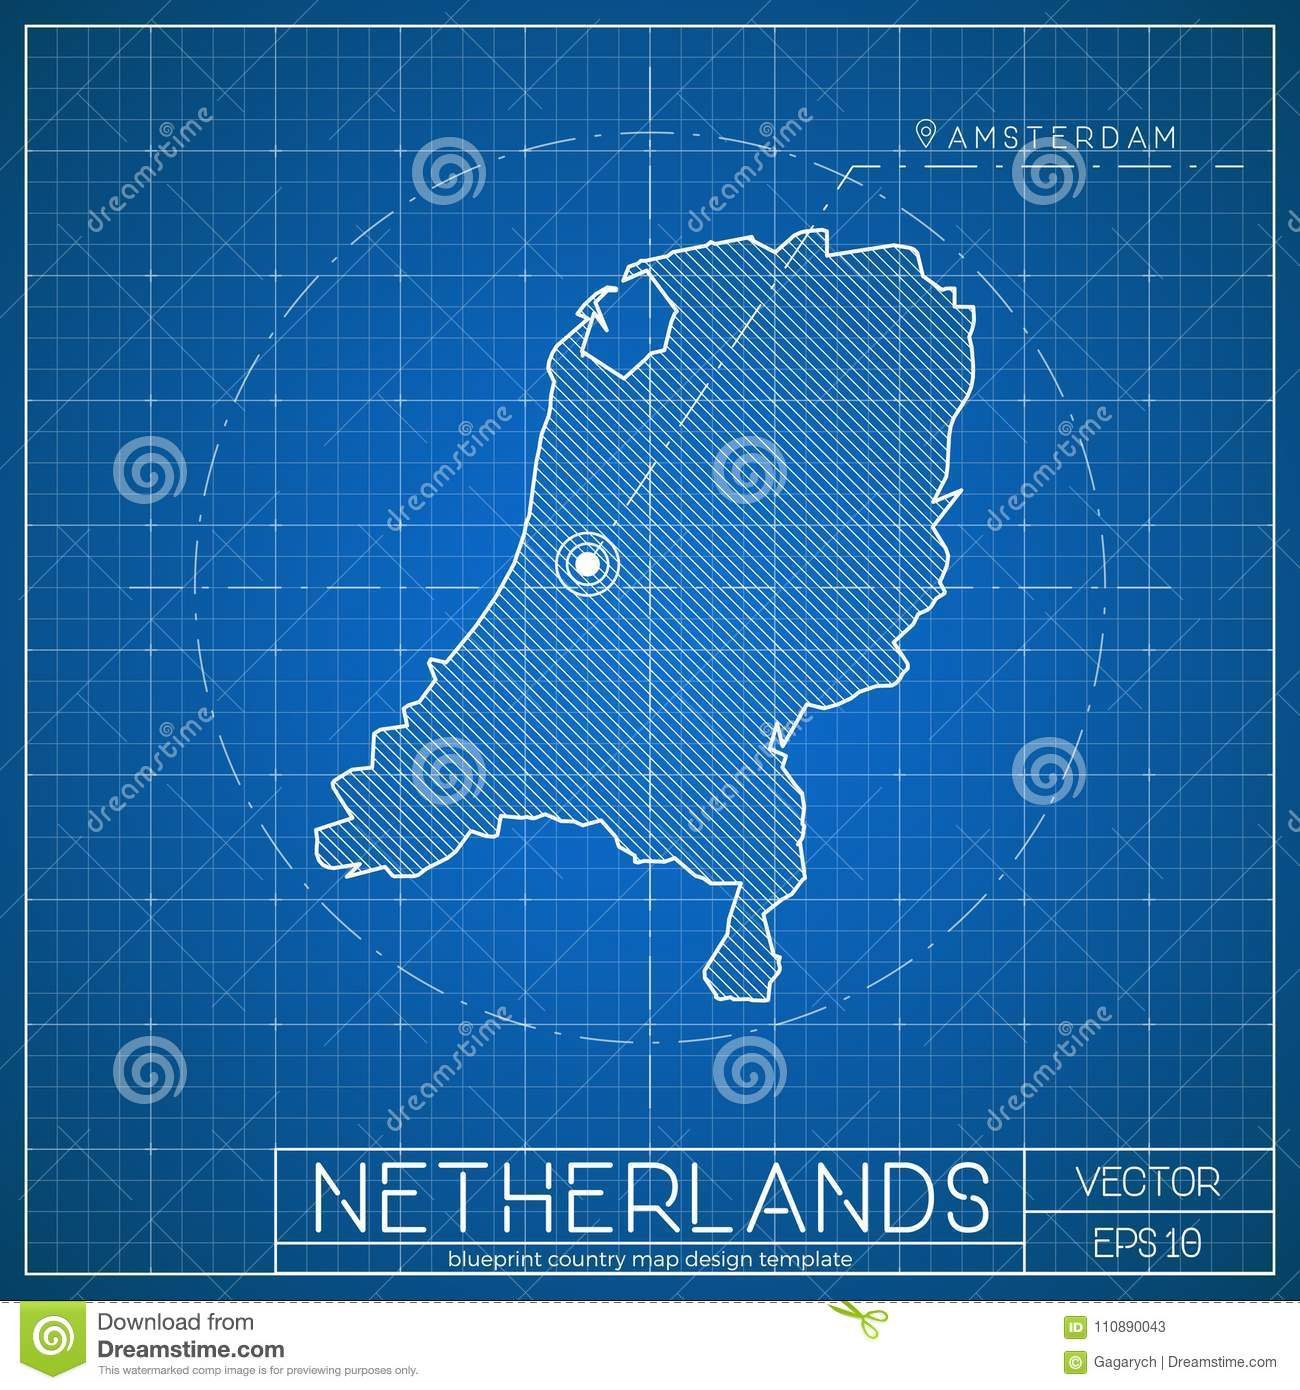 Netherlands blueprint map template with capital stock vector netherlands blueprint map template with capital malvernweather Gallery